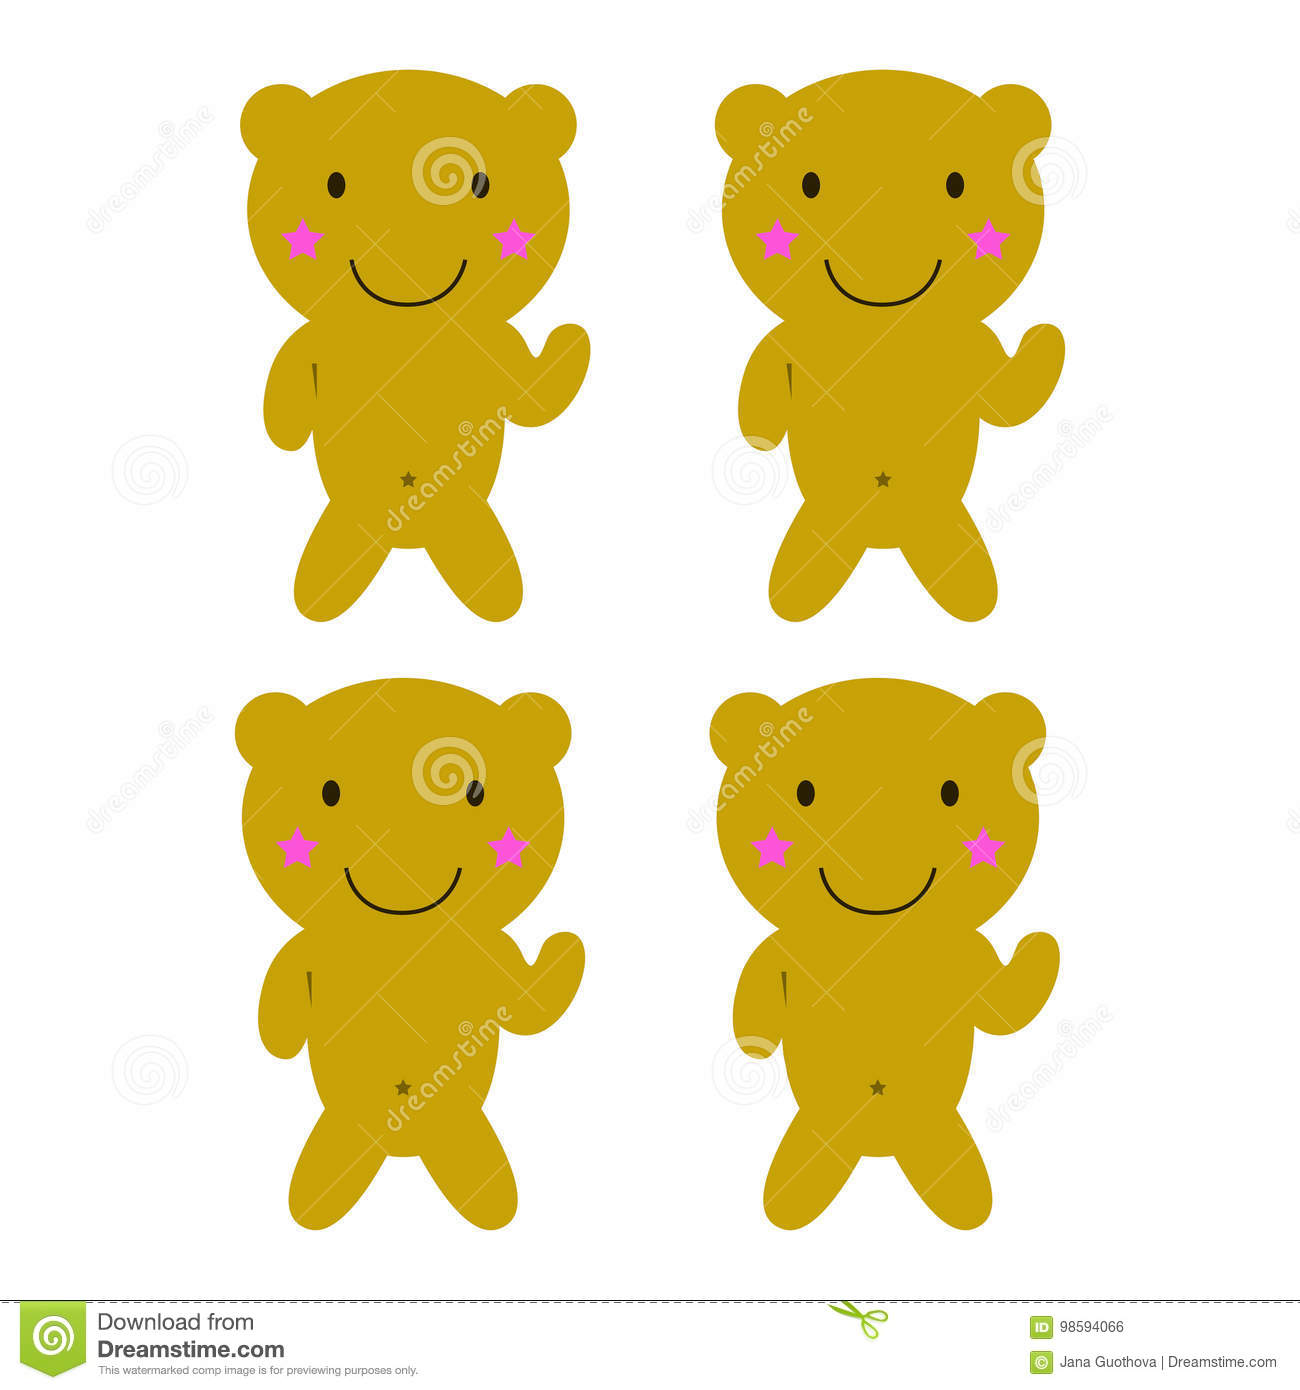 Free Emo Teddy Bear Coloring Pages, Download Free Clip Art, Free ... | 1390x1300